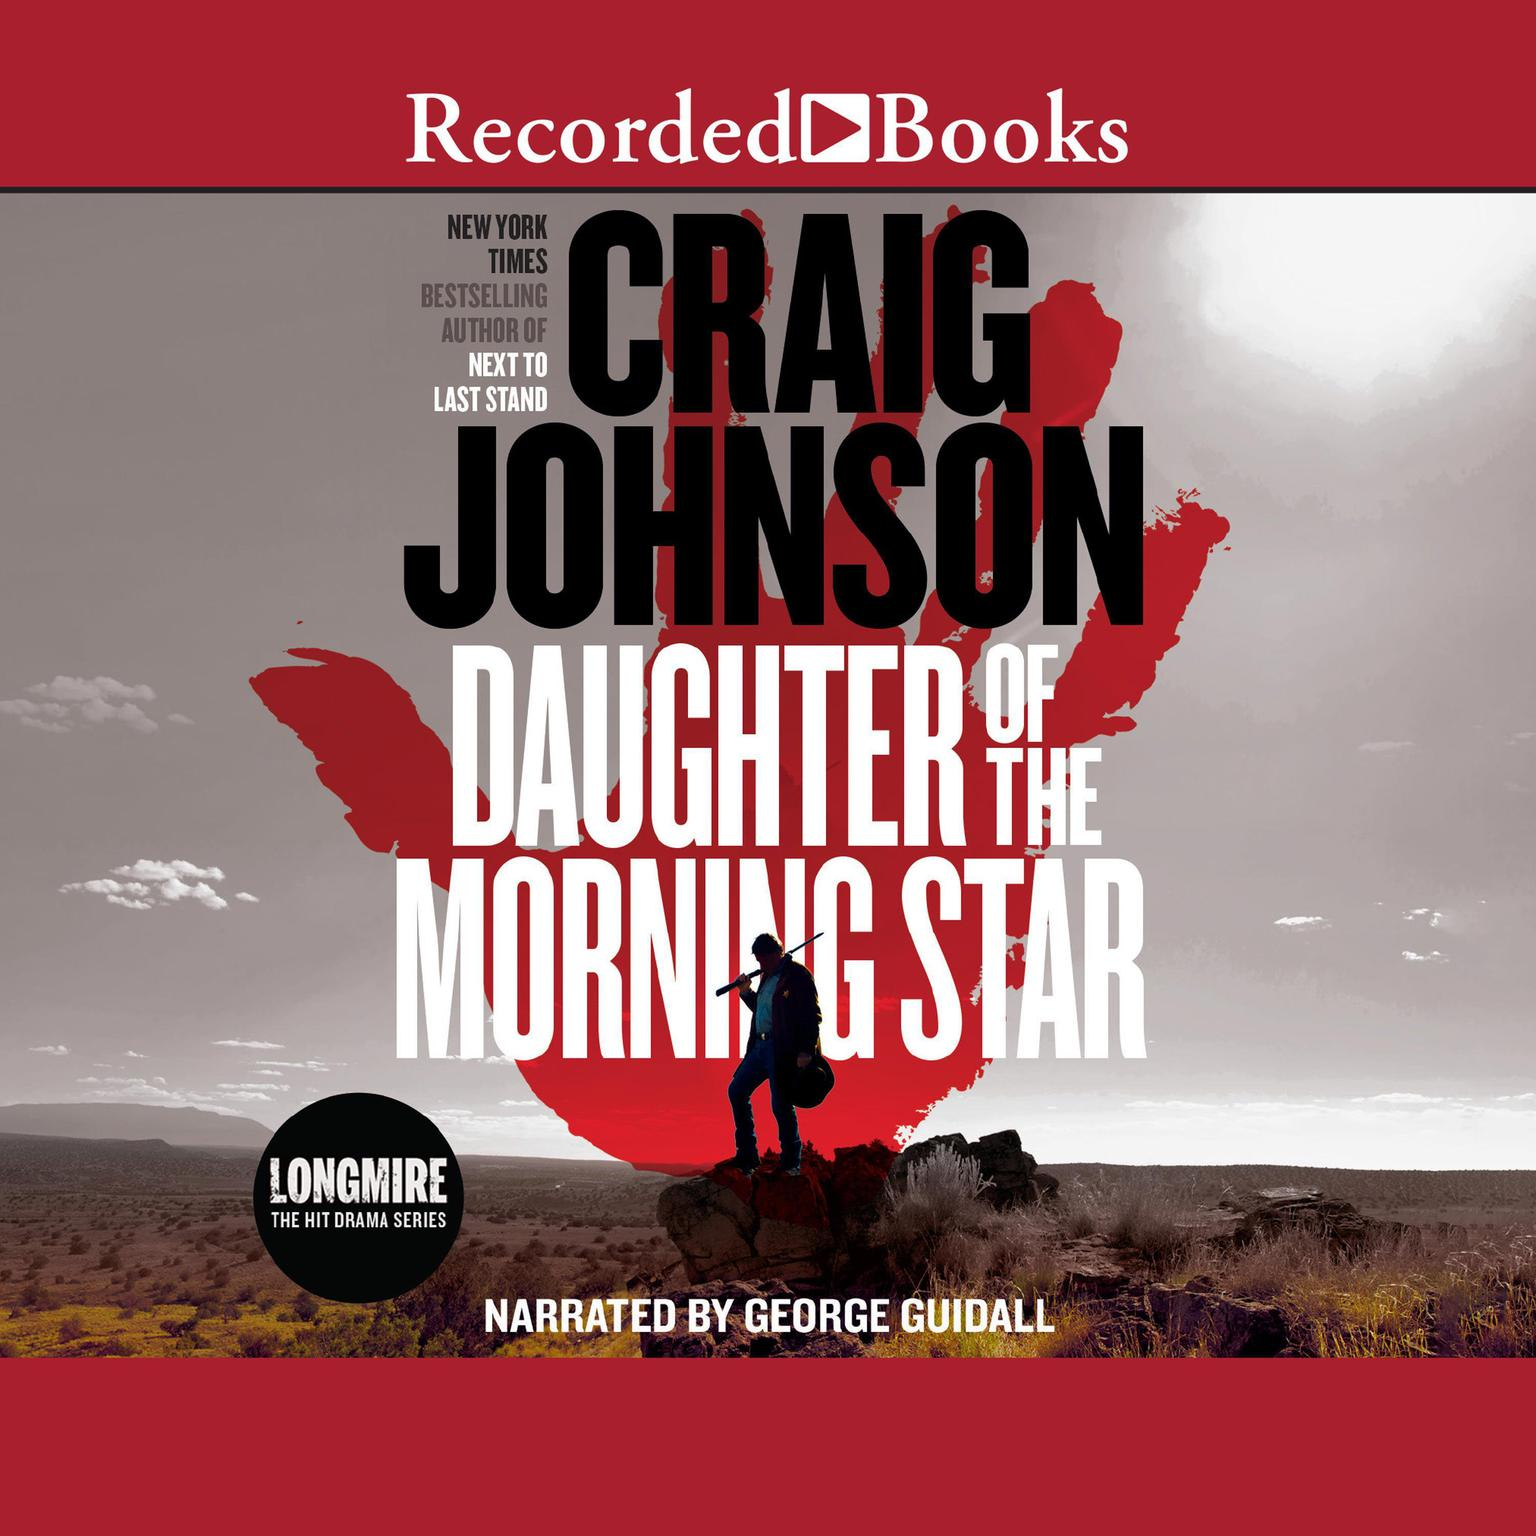 Daughter of the Morning Star International Edition Audiobook, by Craig Johnson